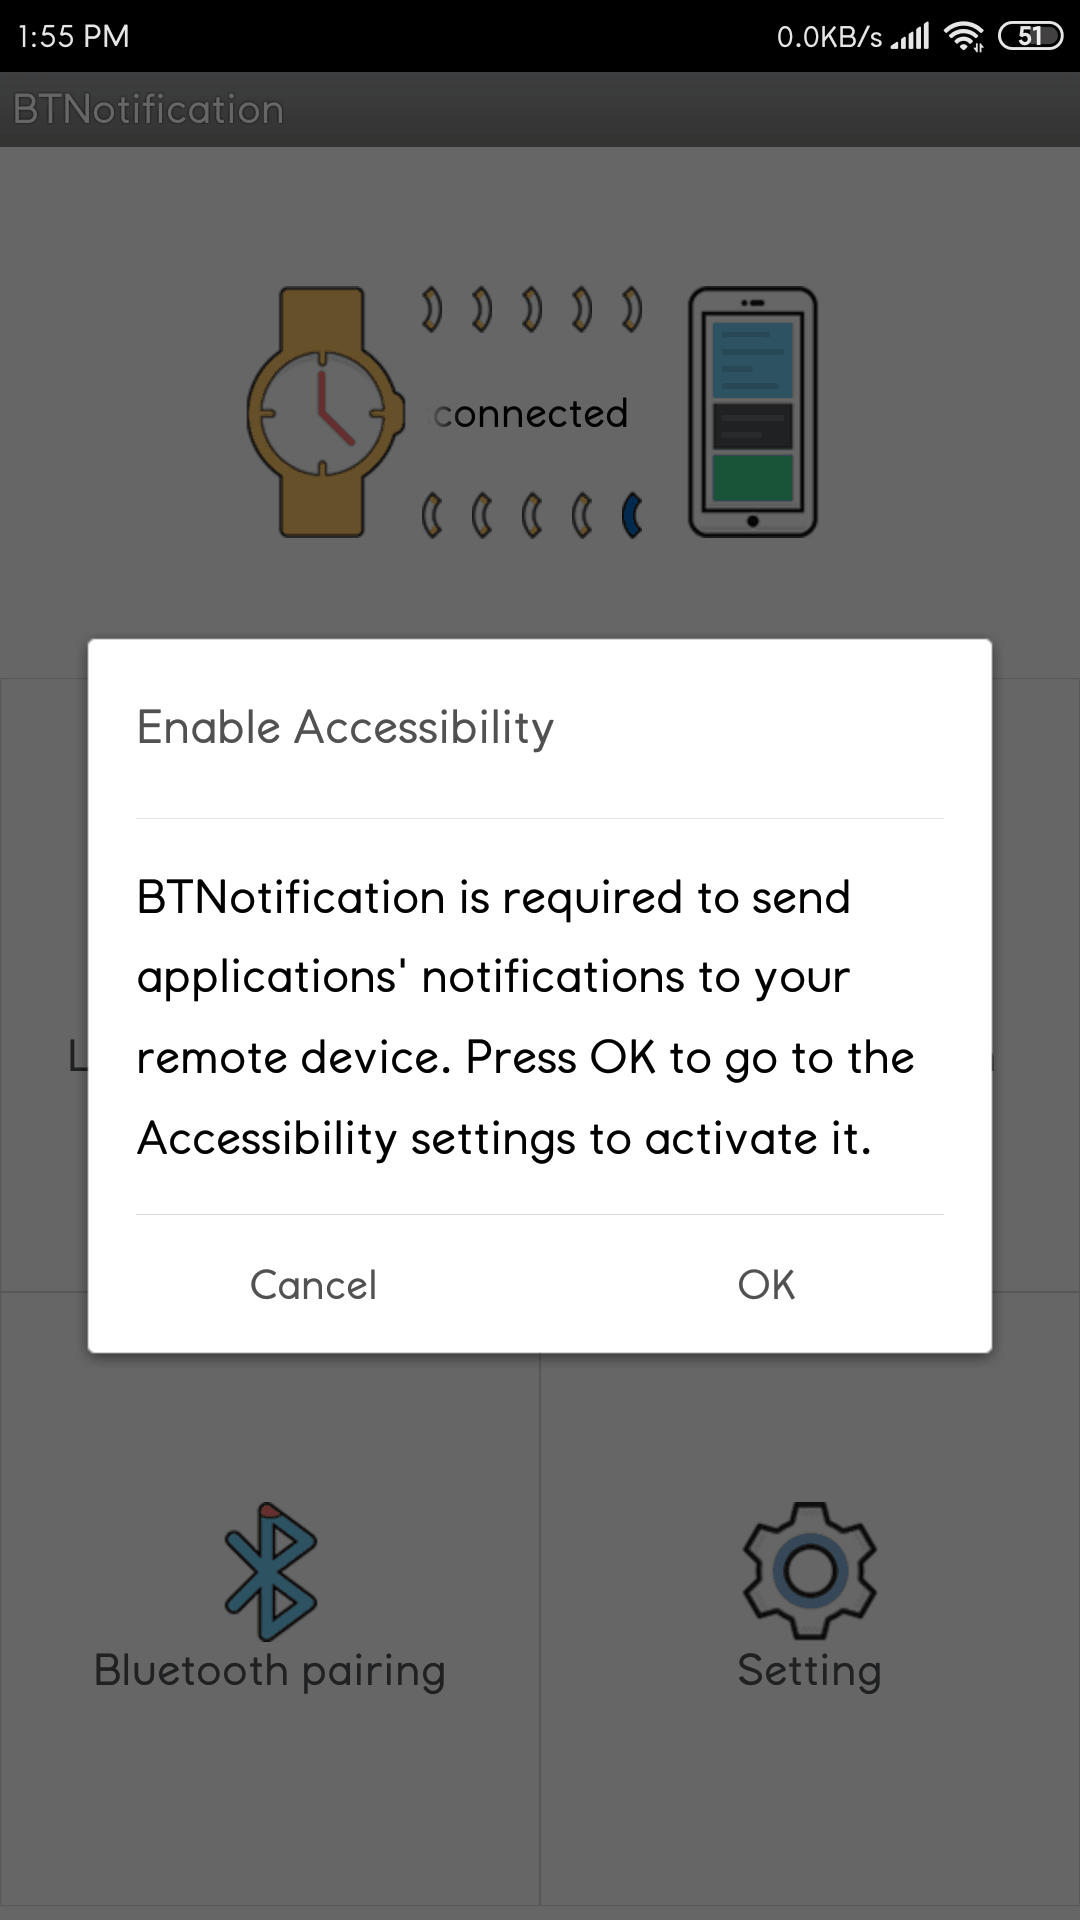 BT Notification App Enable Accessibility Settings